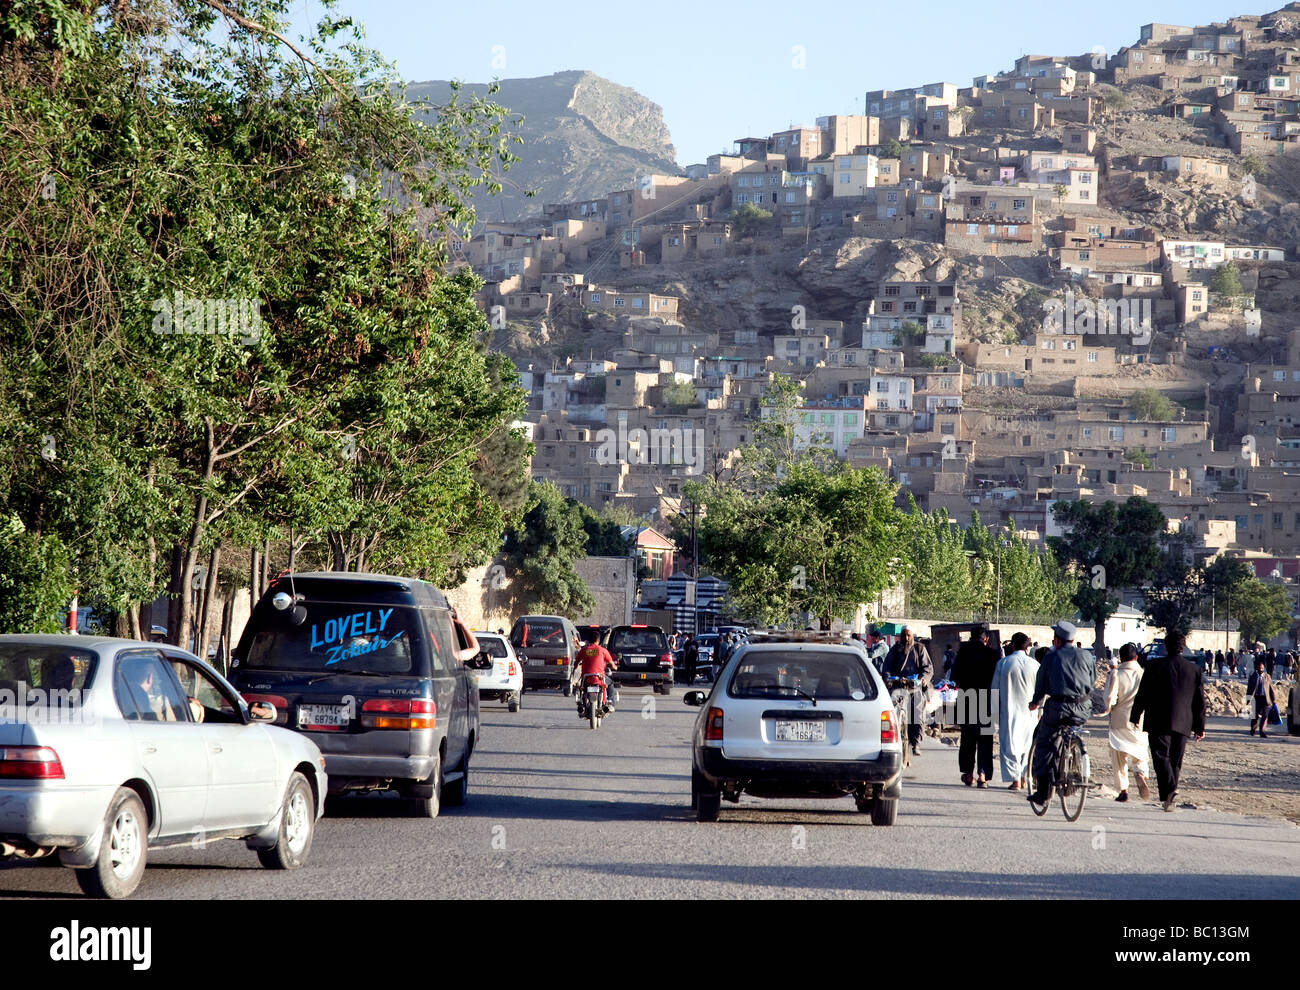 Traffic heading out of central Kabul towards a densely populated hillside; city population has hugely expanded in - Stock Image